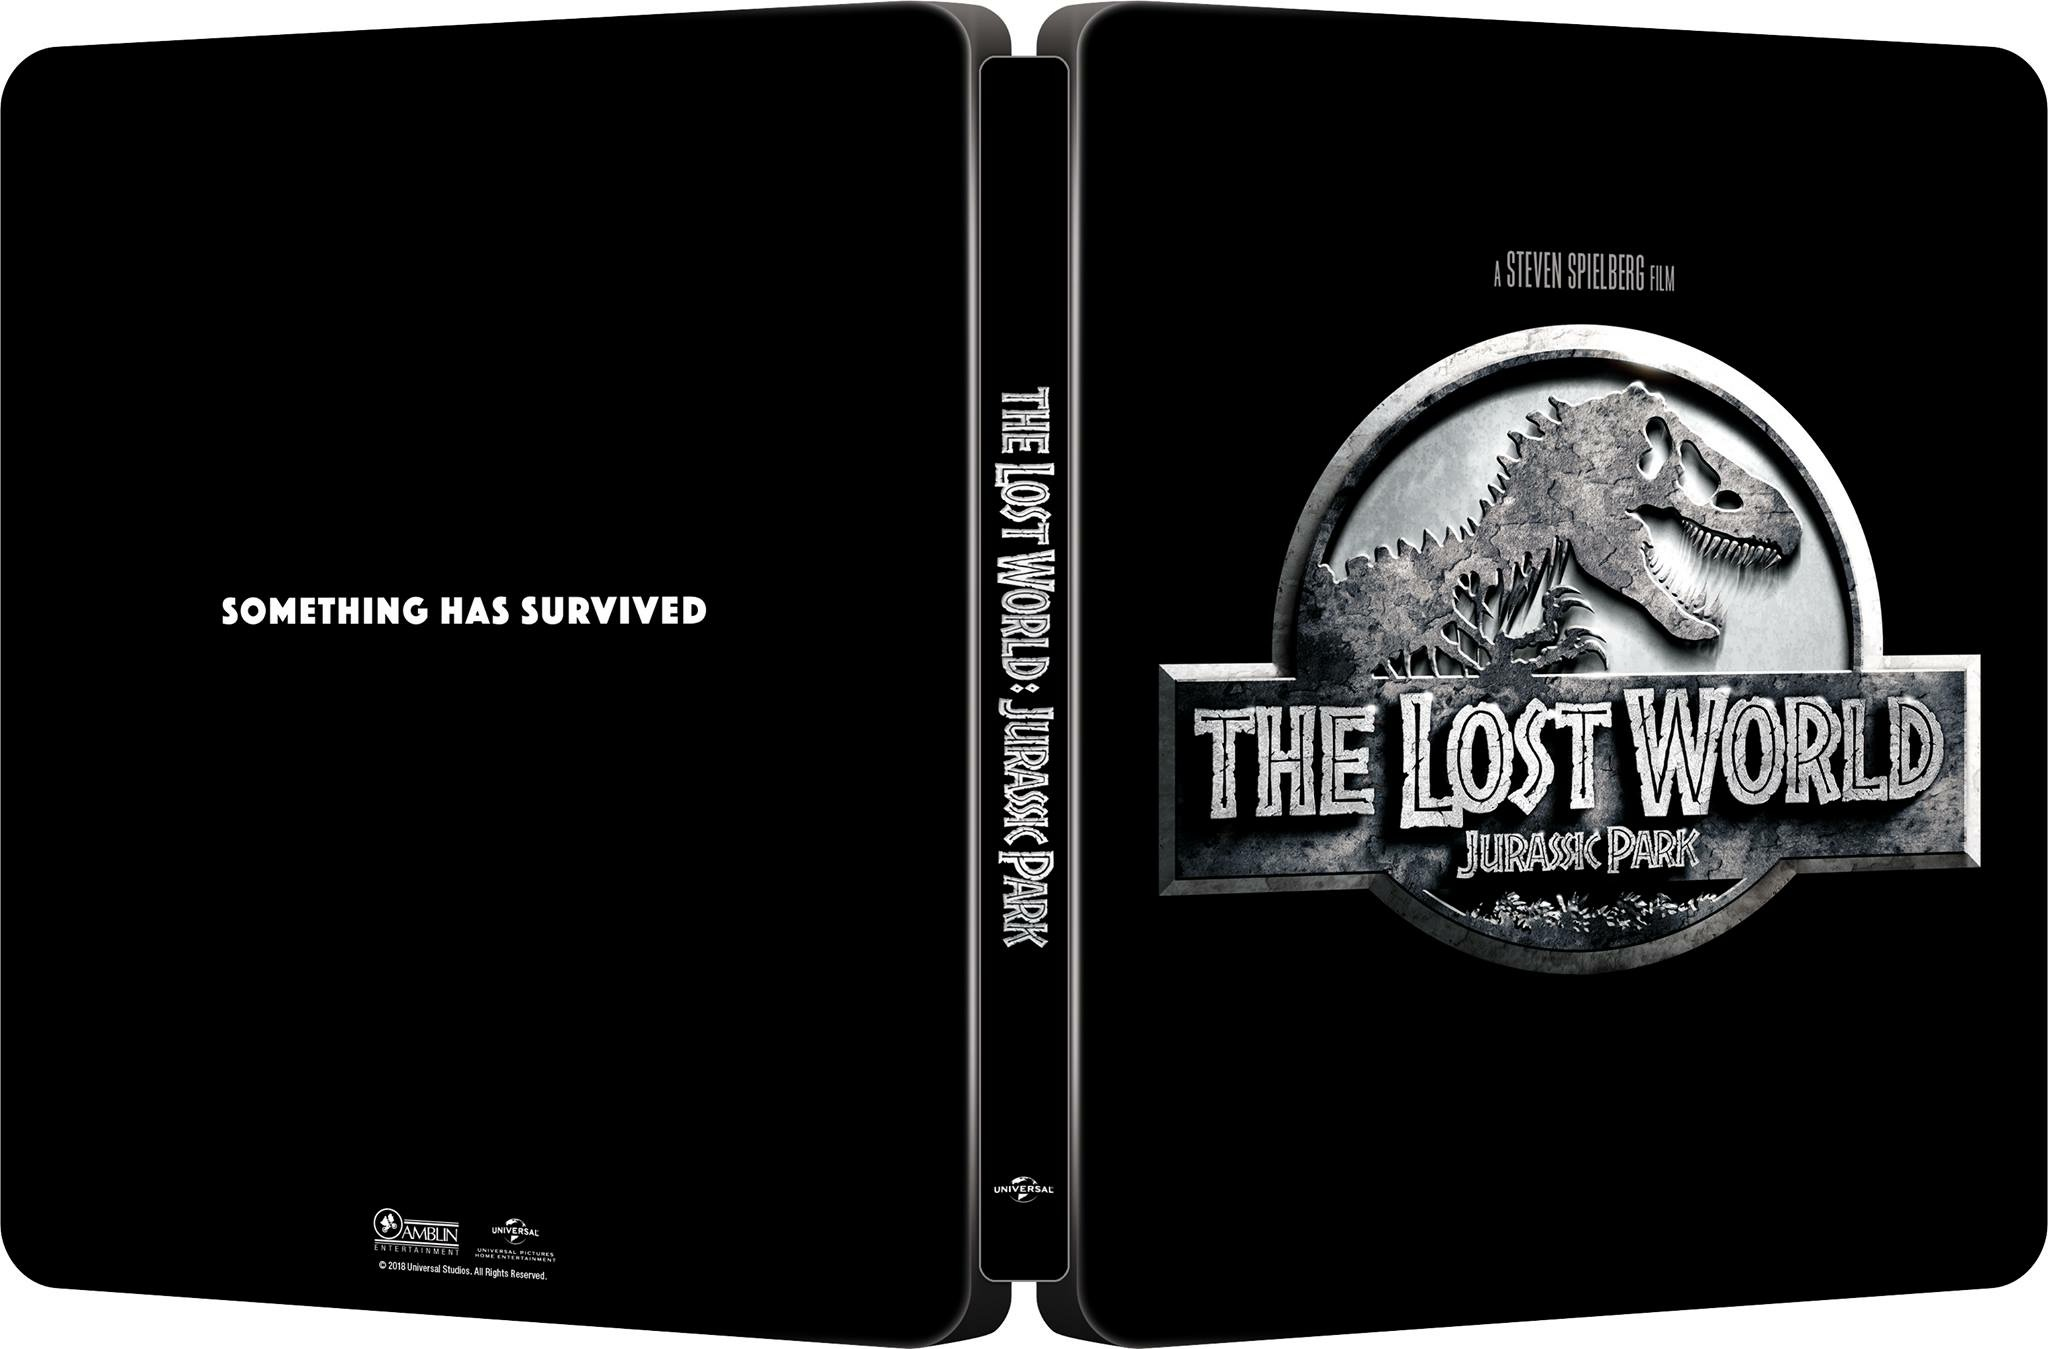 The Lost World Jurassic Park steelbook 1